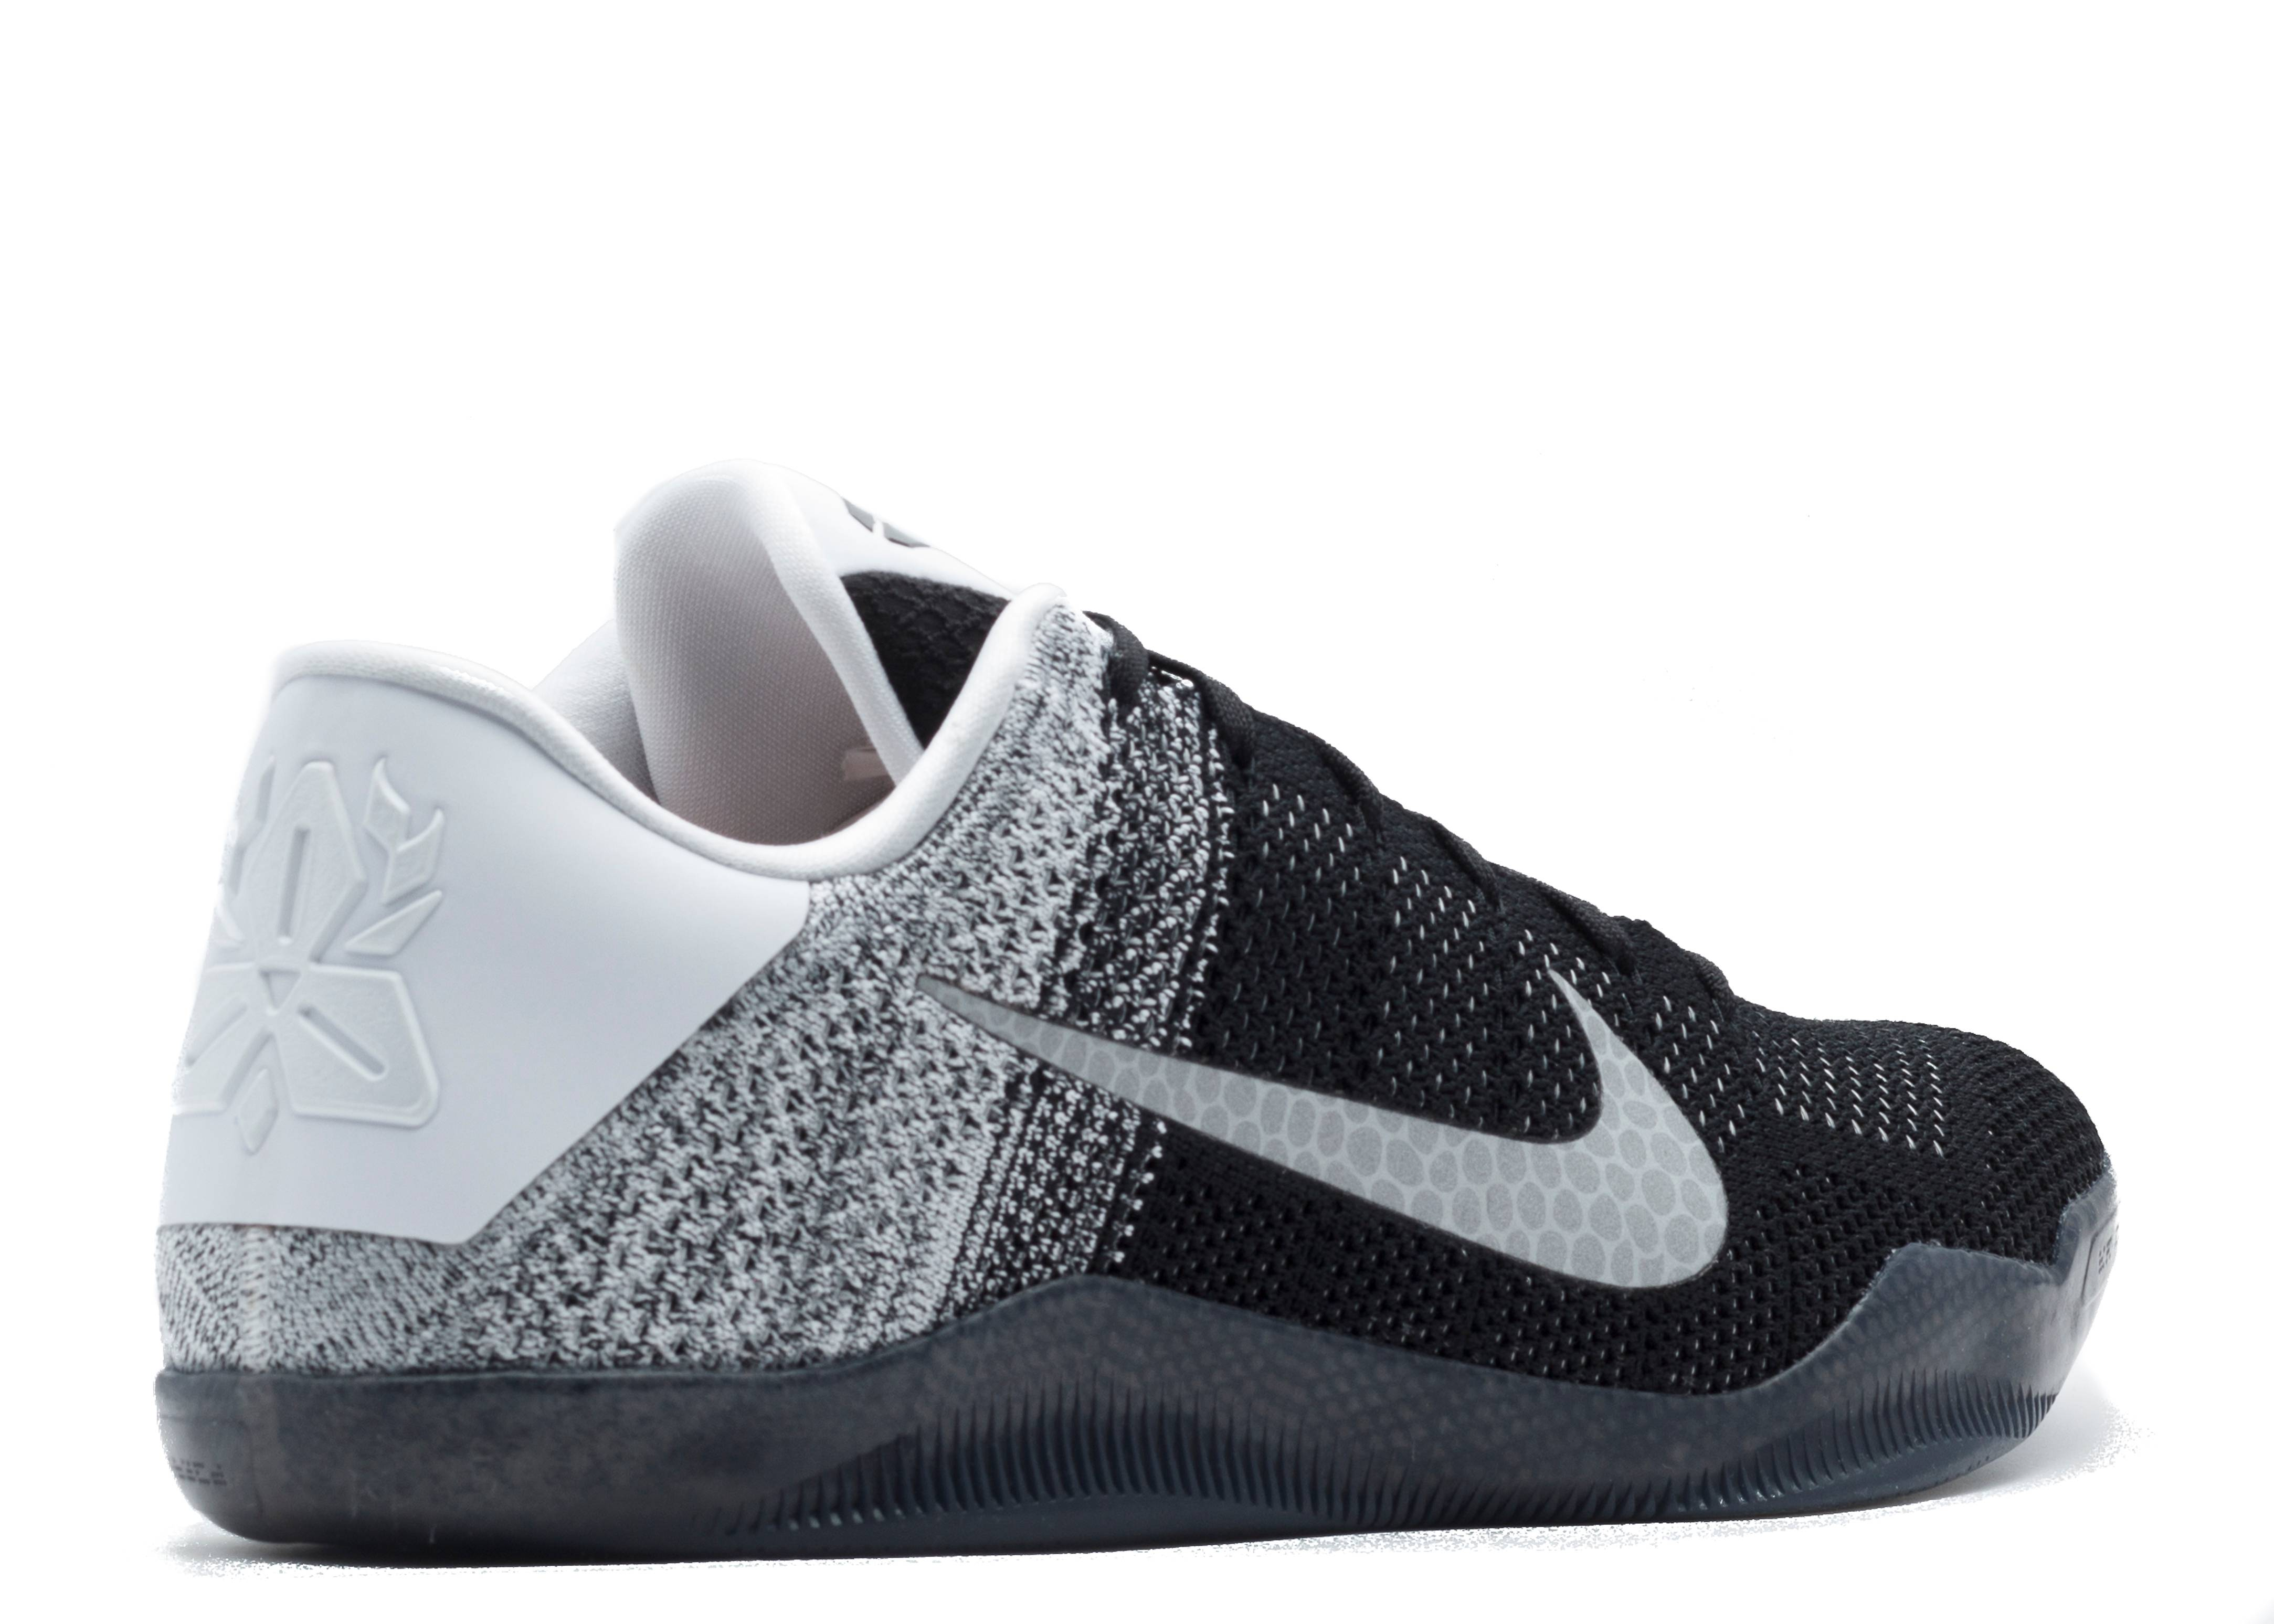 official photos 39a89 0b853 ... where can i buy kobe 11 elite low nike 822675 105 white black court  purple flight ...